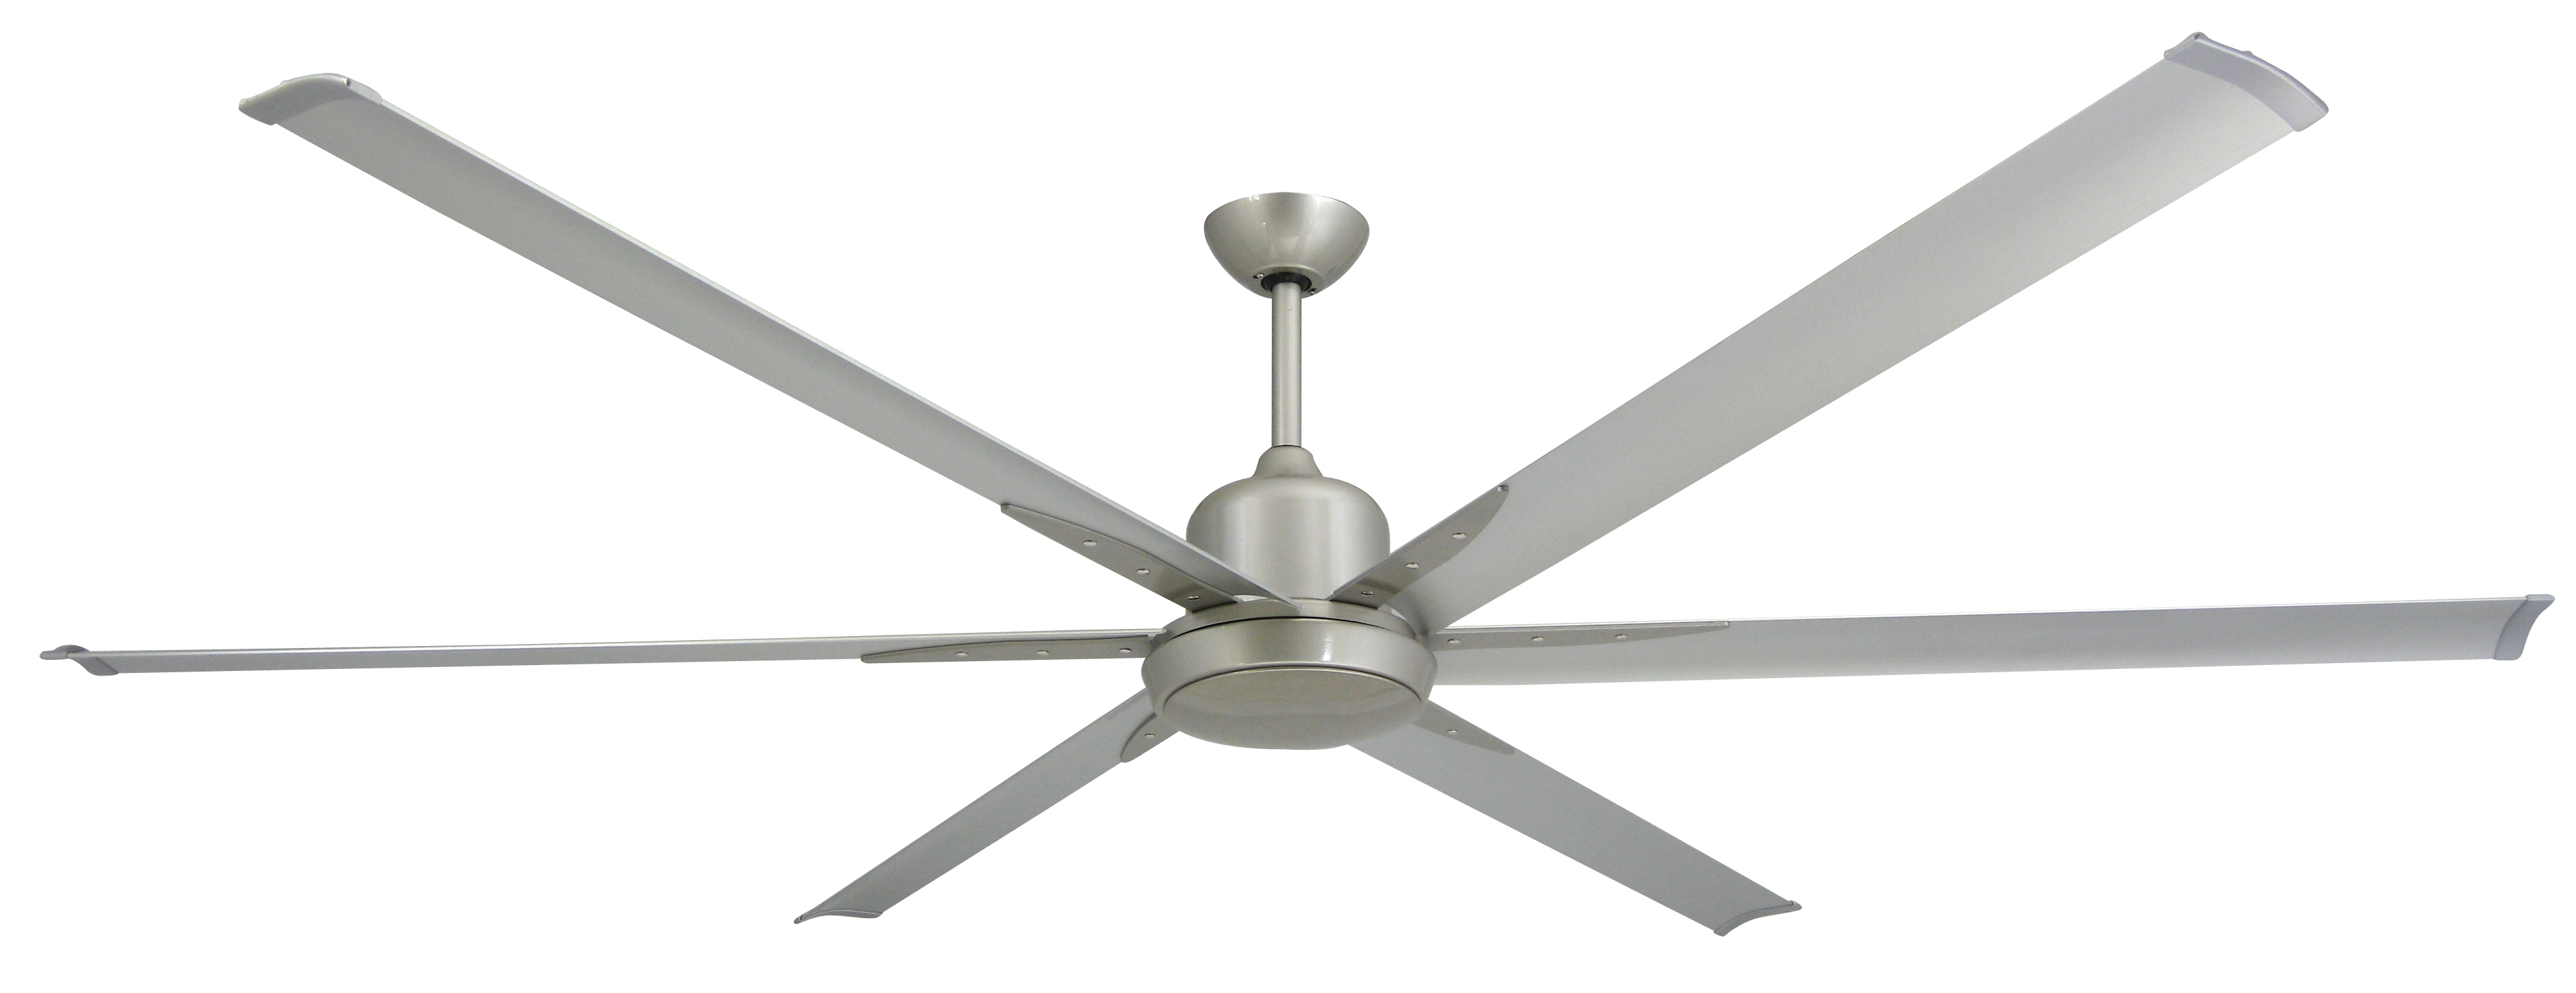 Permalink to Industrial Ceiling Fans With Lights